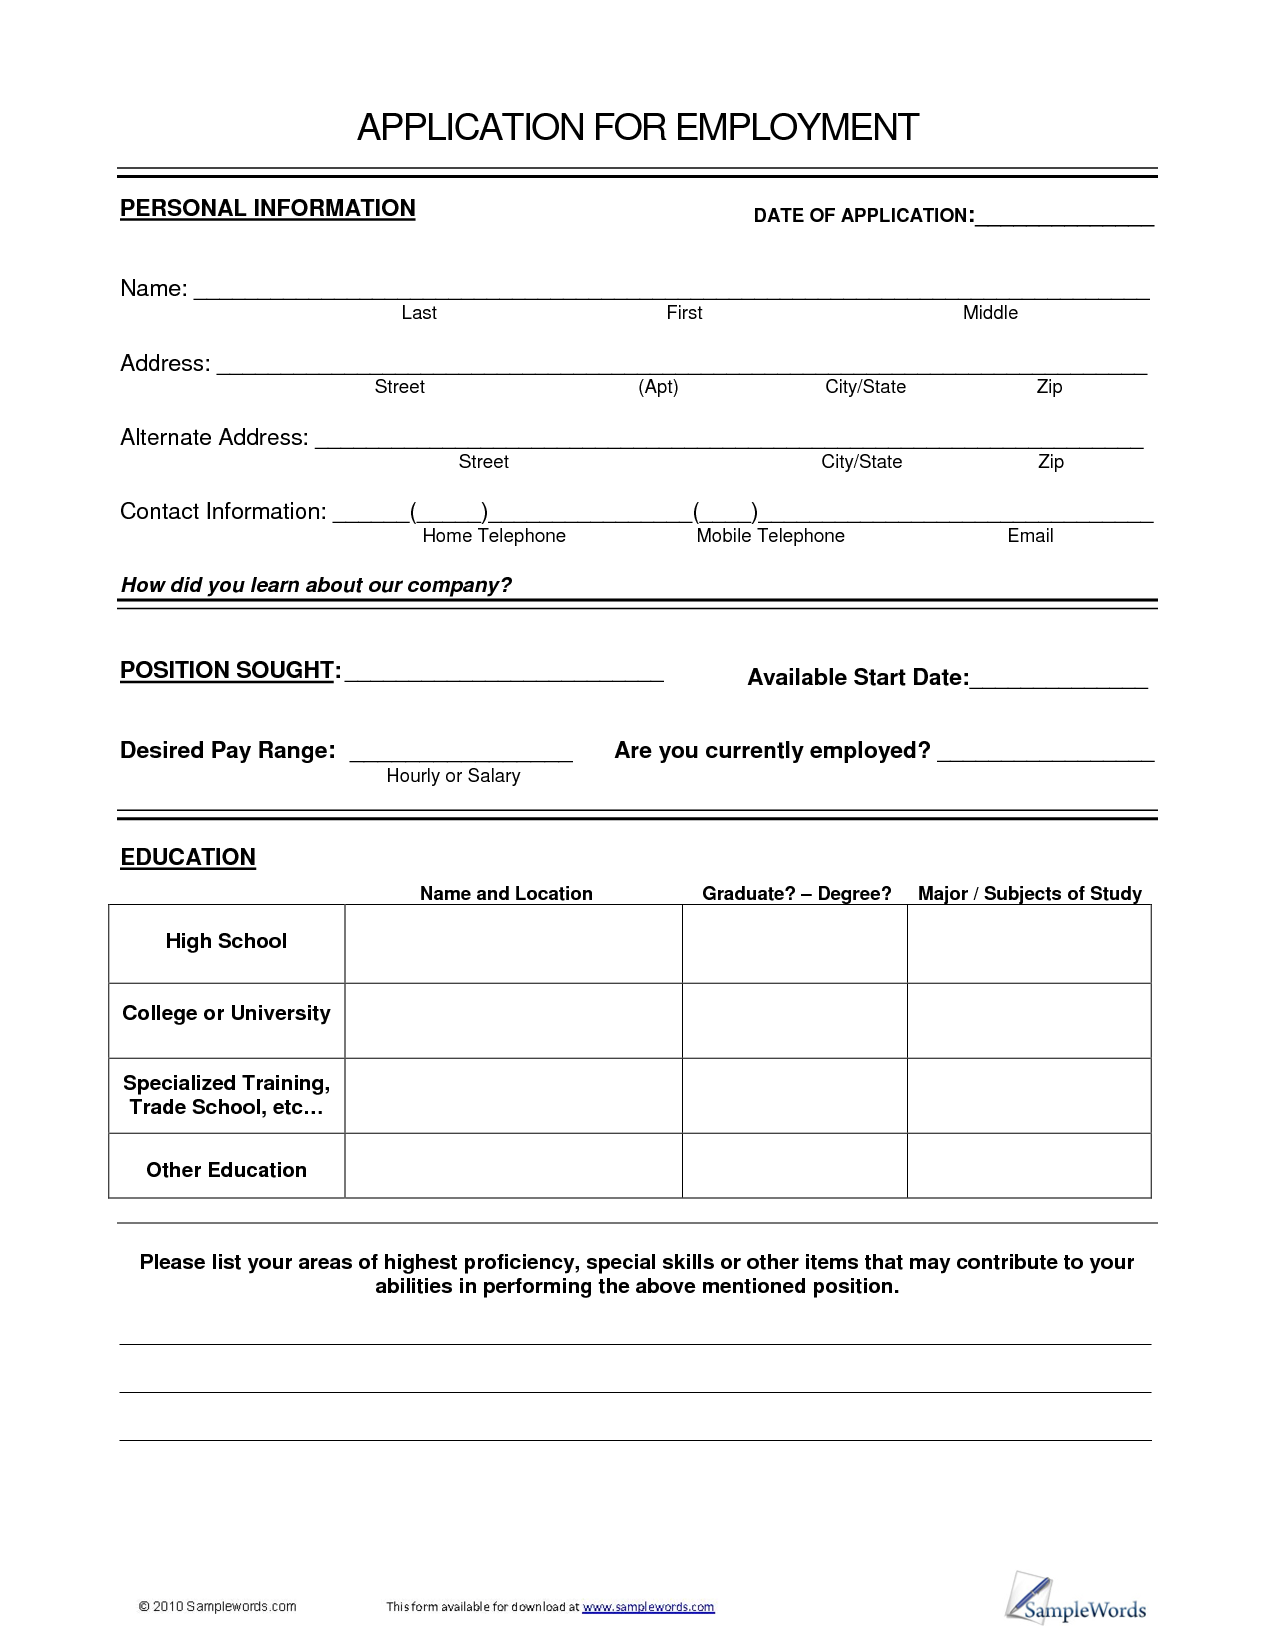 General blank job application printable form suitable meanwhile